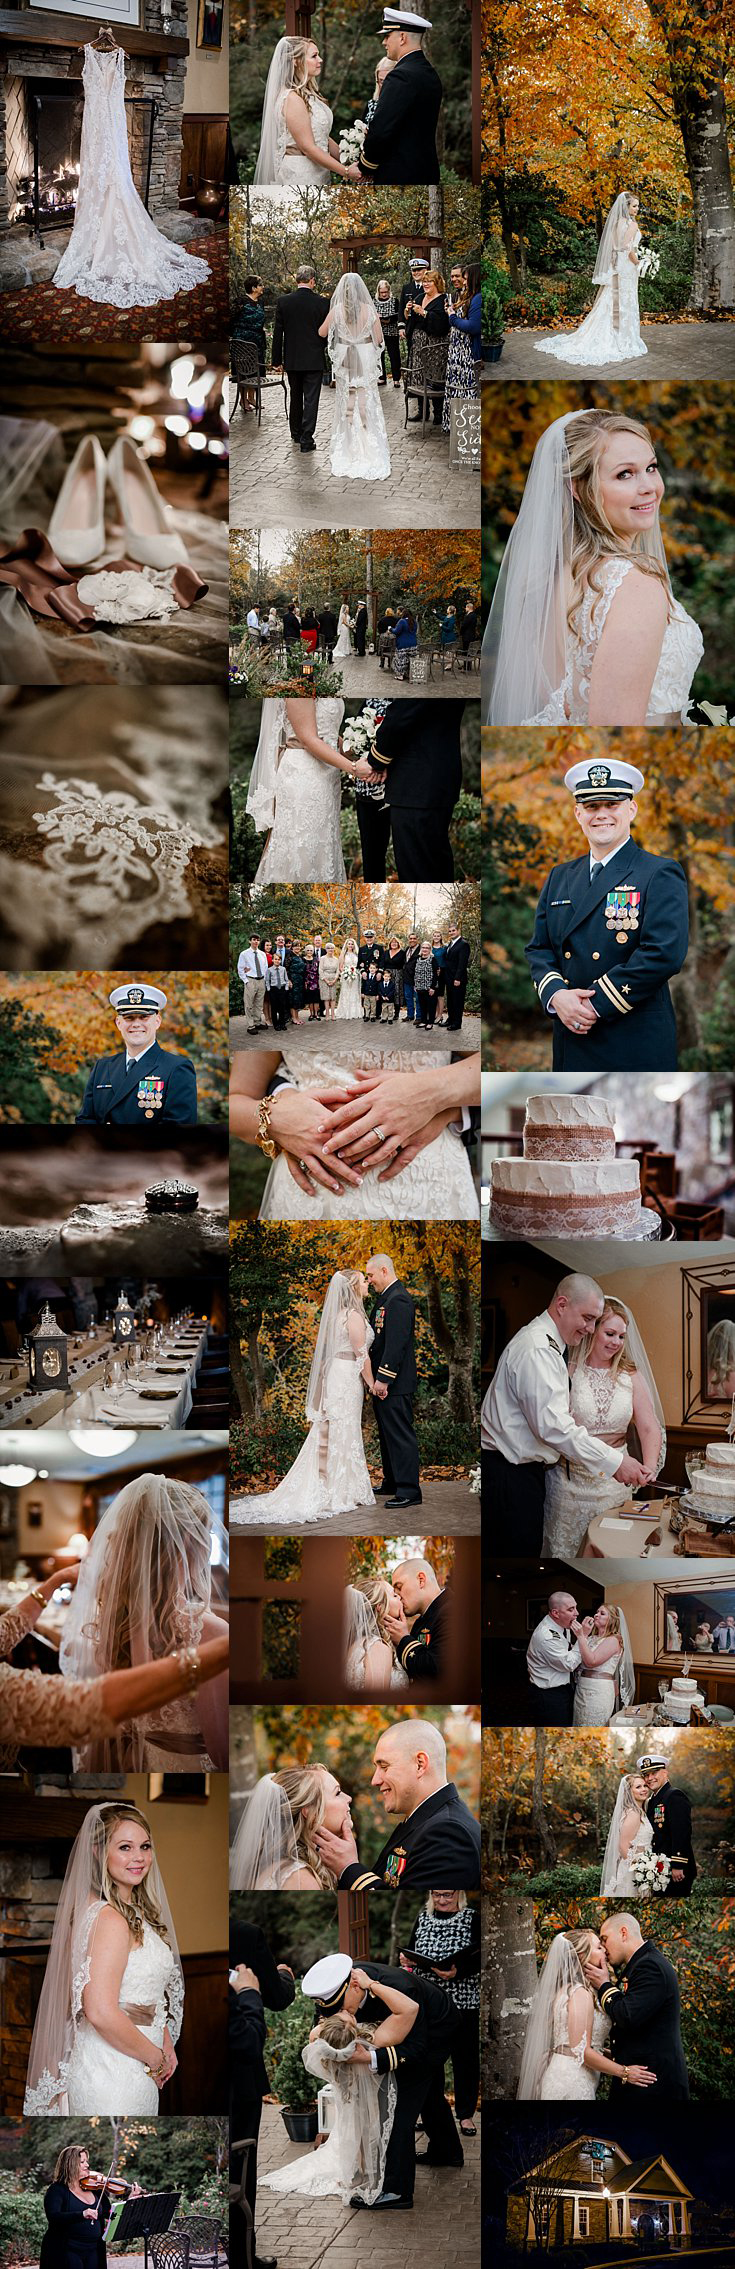 fall-wedding-autumn-outdoor-wedding-bride-military-groom-cream-brown-ivory-fall-wedding-inspiration-beautiful-photography-real-weddings-melissa-bliss-photography-hampton-roads-va-photographer-vintage-tavern-suffolk.jpg